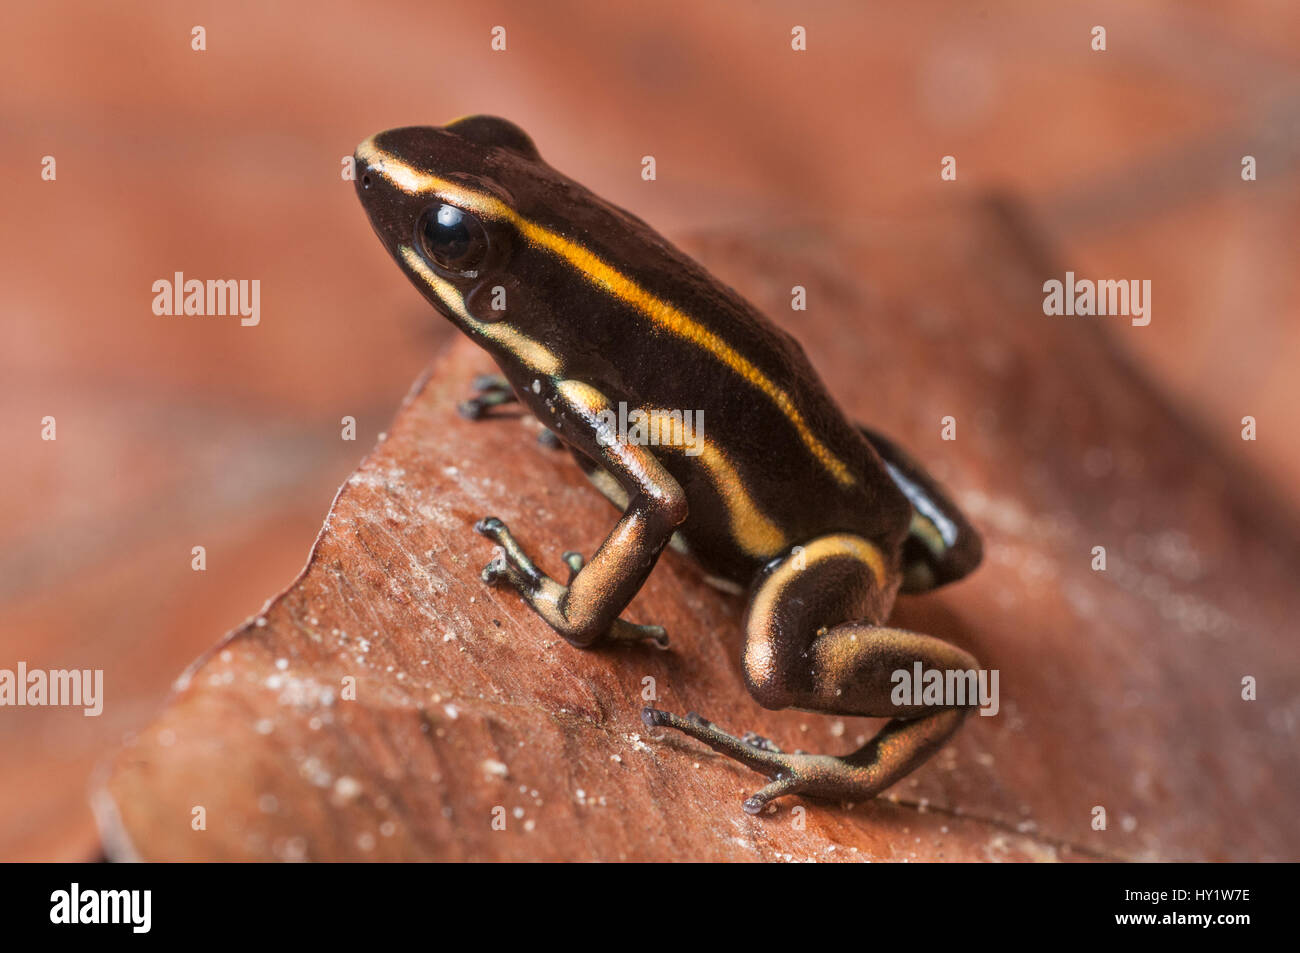 Yellow-striped Poison Dart Frog (Dendrobates truncatus) in leaf litter on forest floor, Paujil Nature Reserve, Magdalena - Stock Image